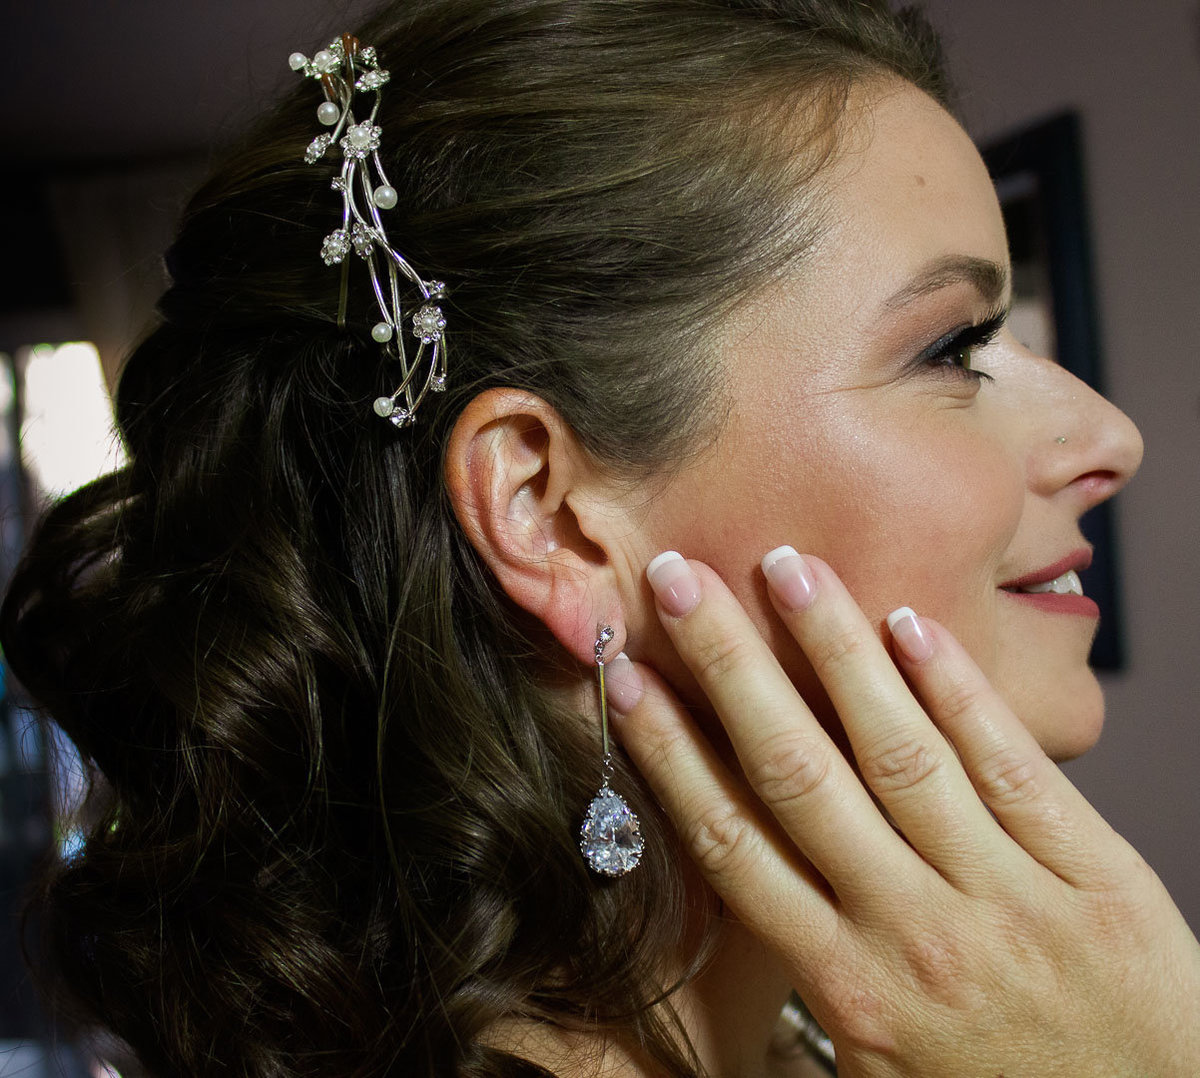 bride profile showing her silver hair jewelry and tear drop sparkling earrings